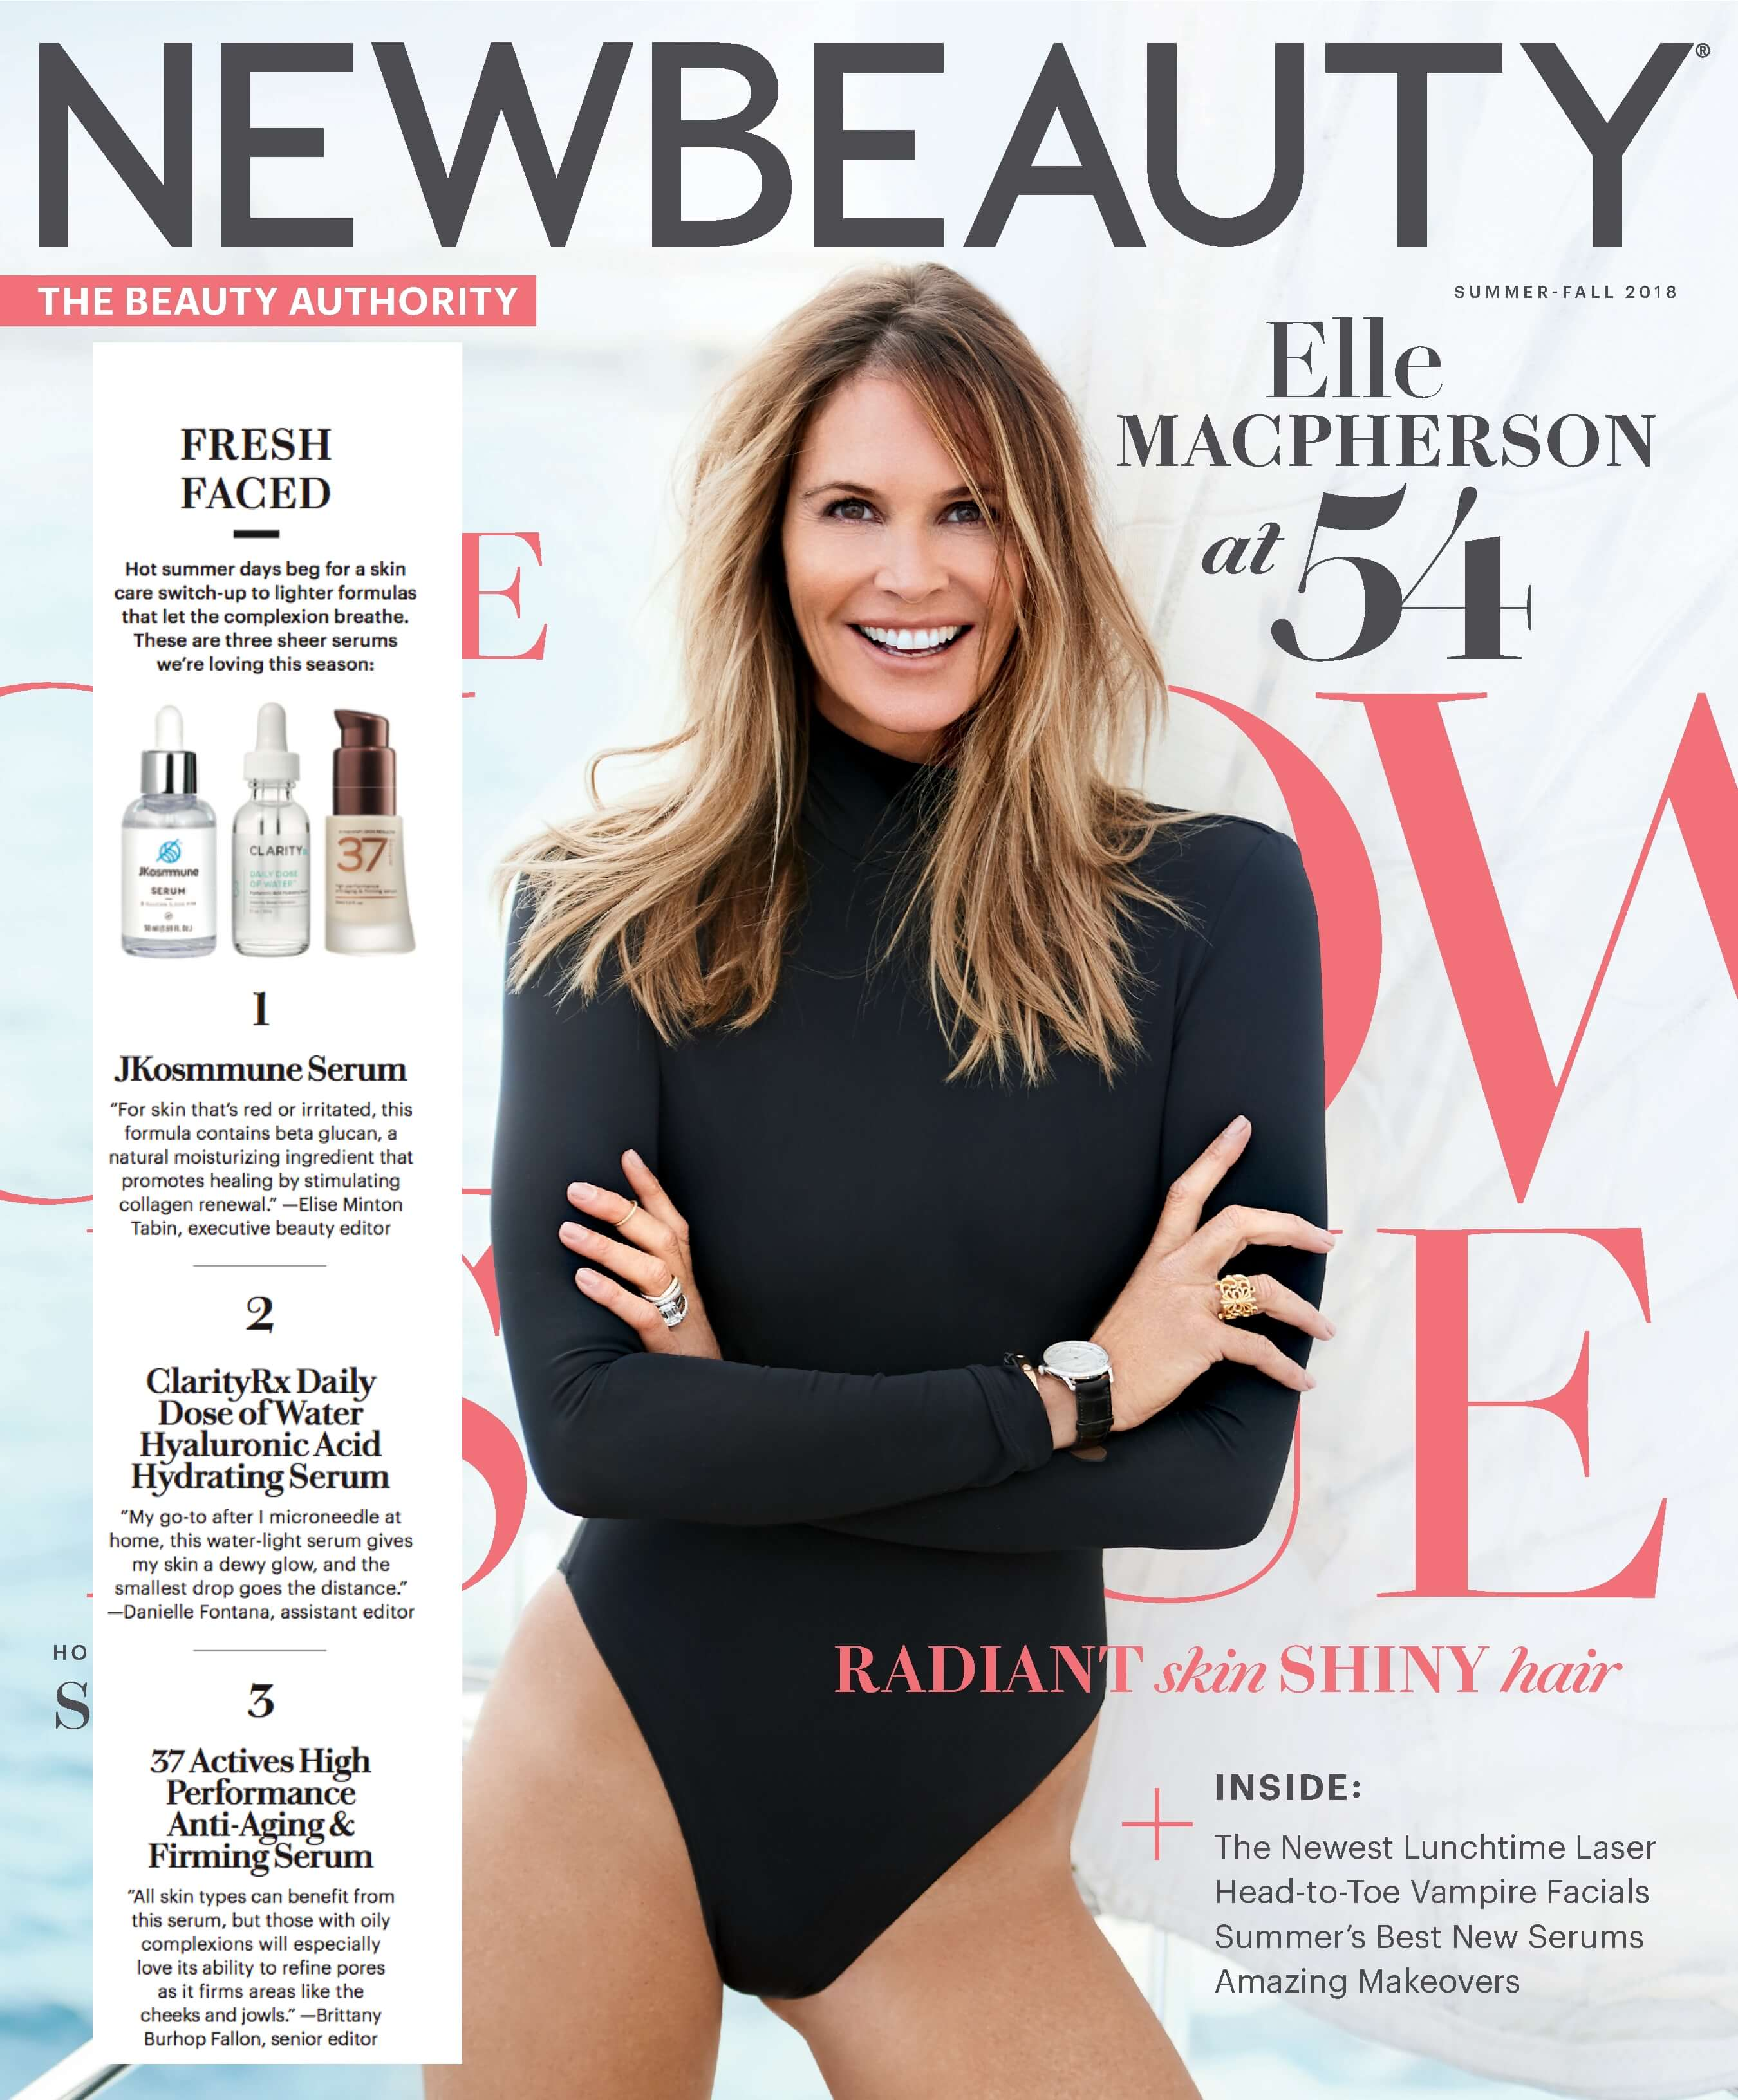 Cover of New Beauty Magazine with article clipping